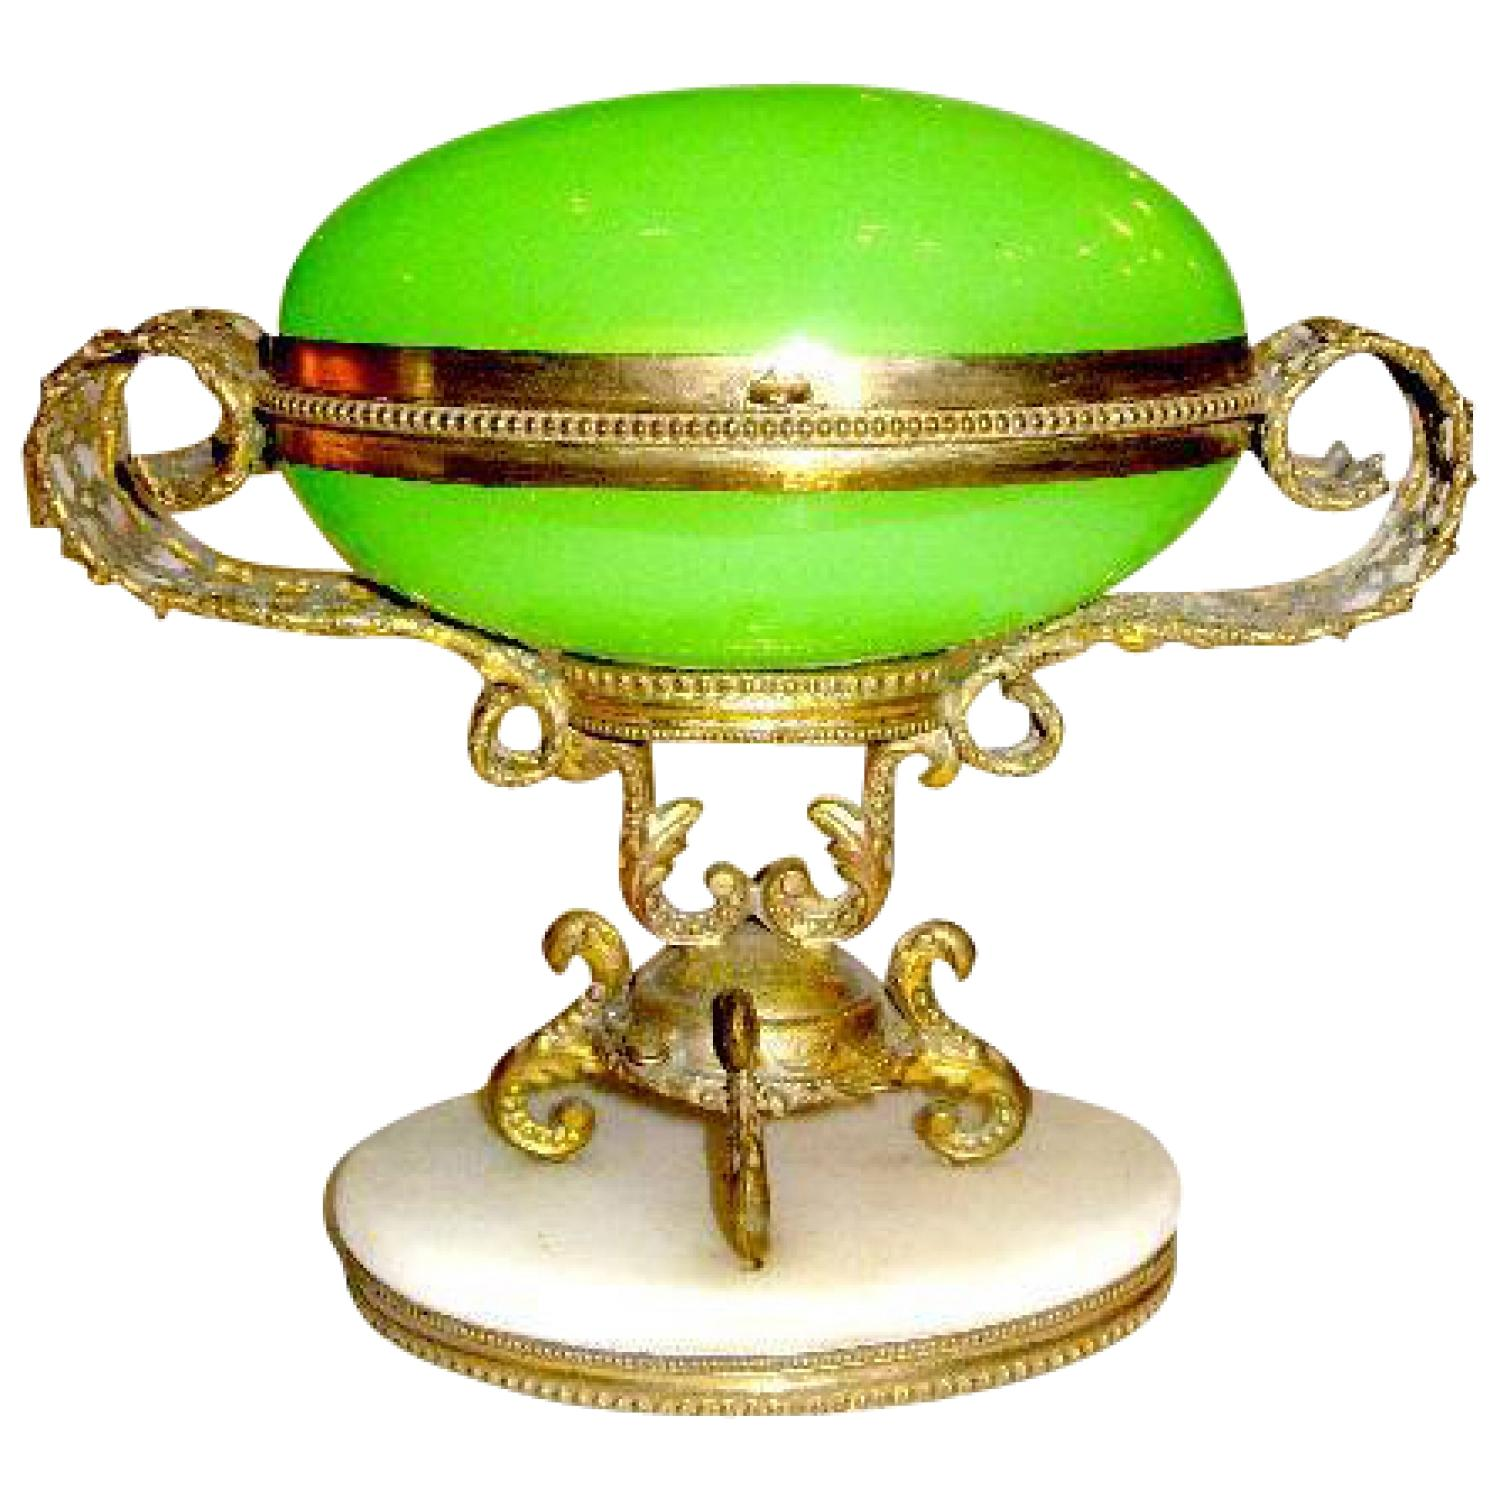 Palais Royal Green Opaline Glass 'Egg' Casket